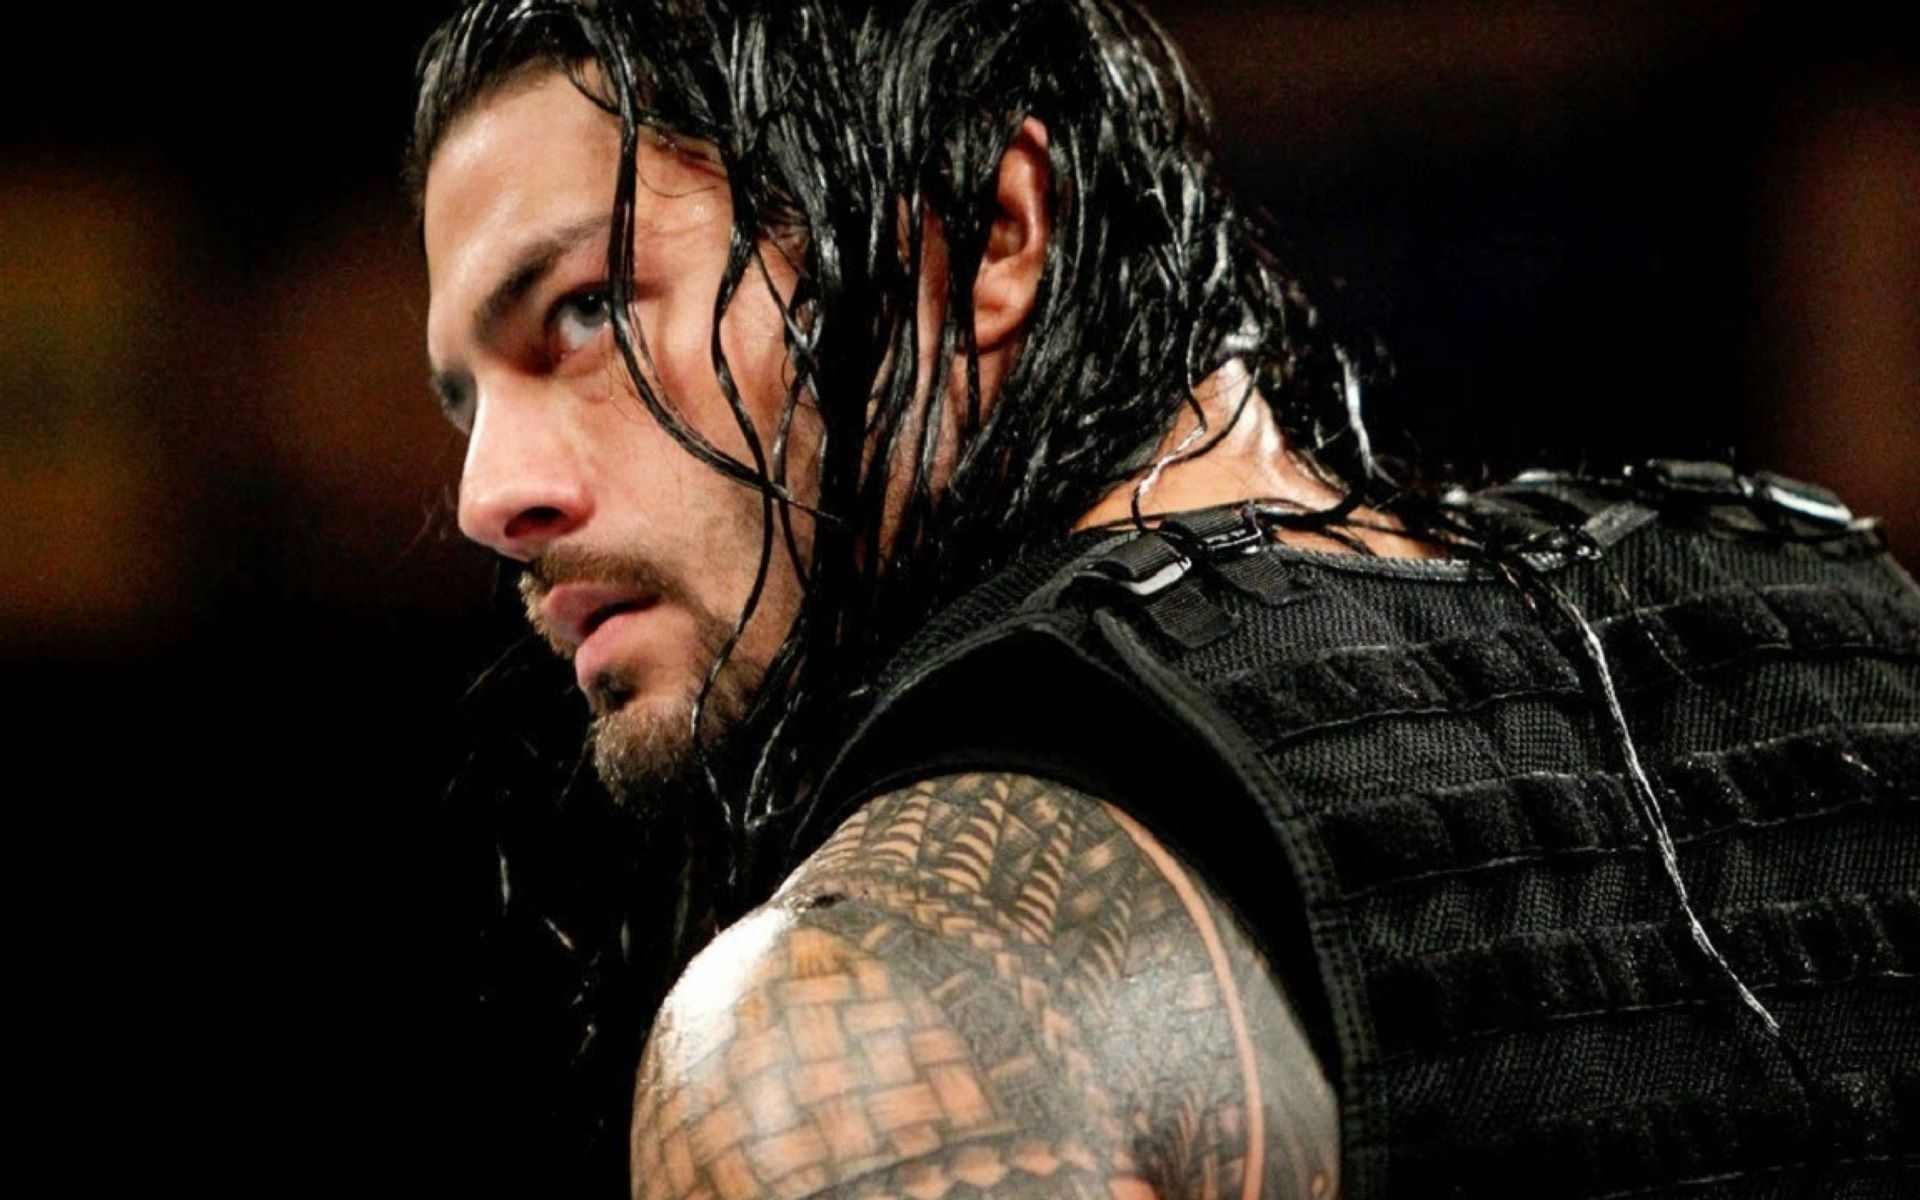 The WWE's Roman Reigns: Living Proof That Being Hated Means You've Made It - Manifestation Machine